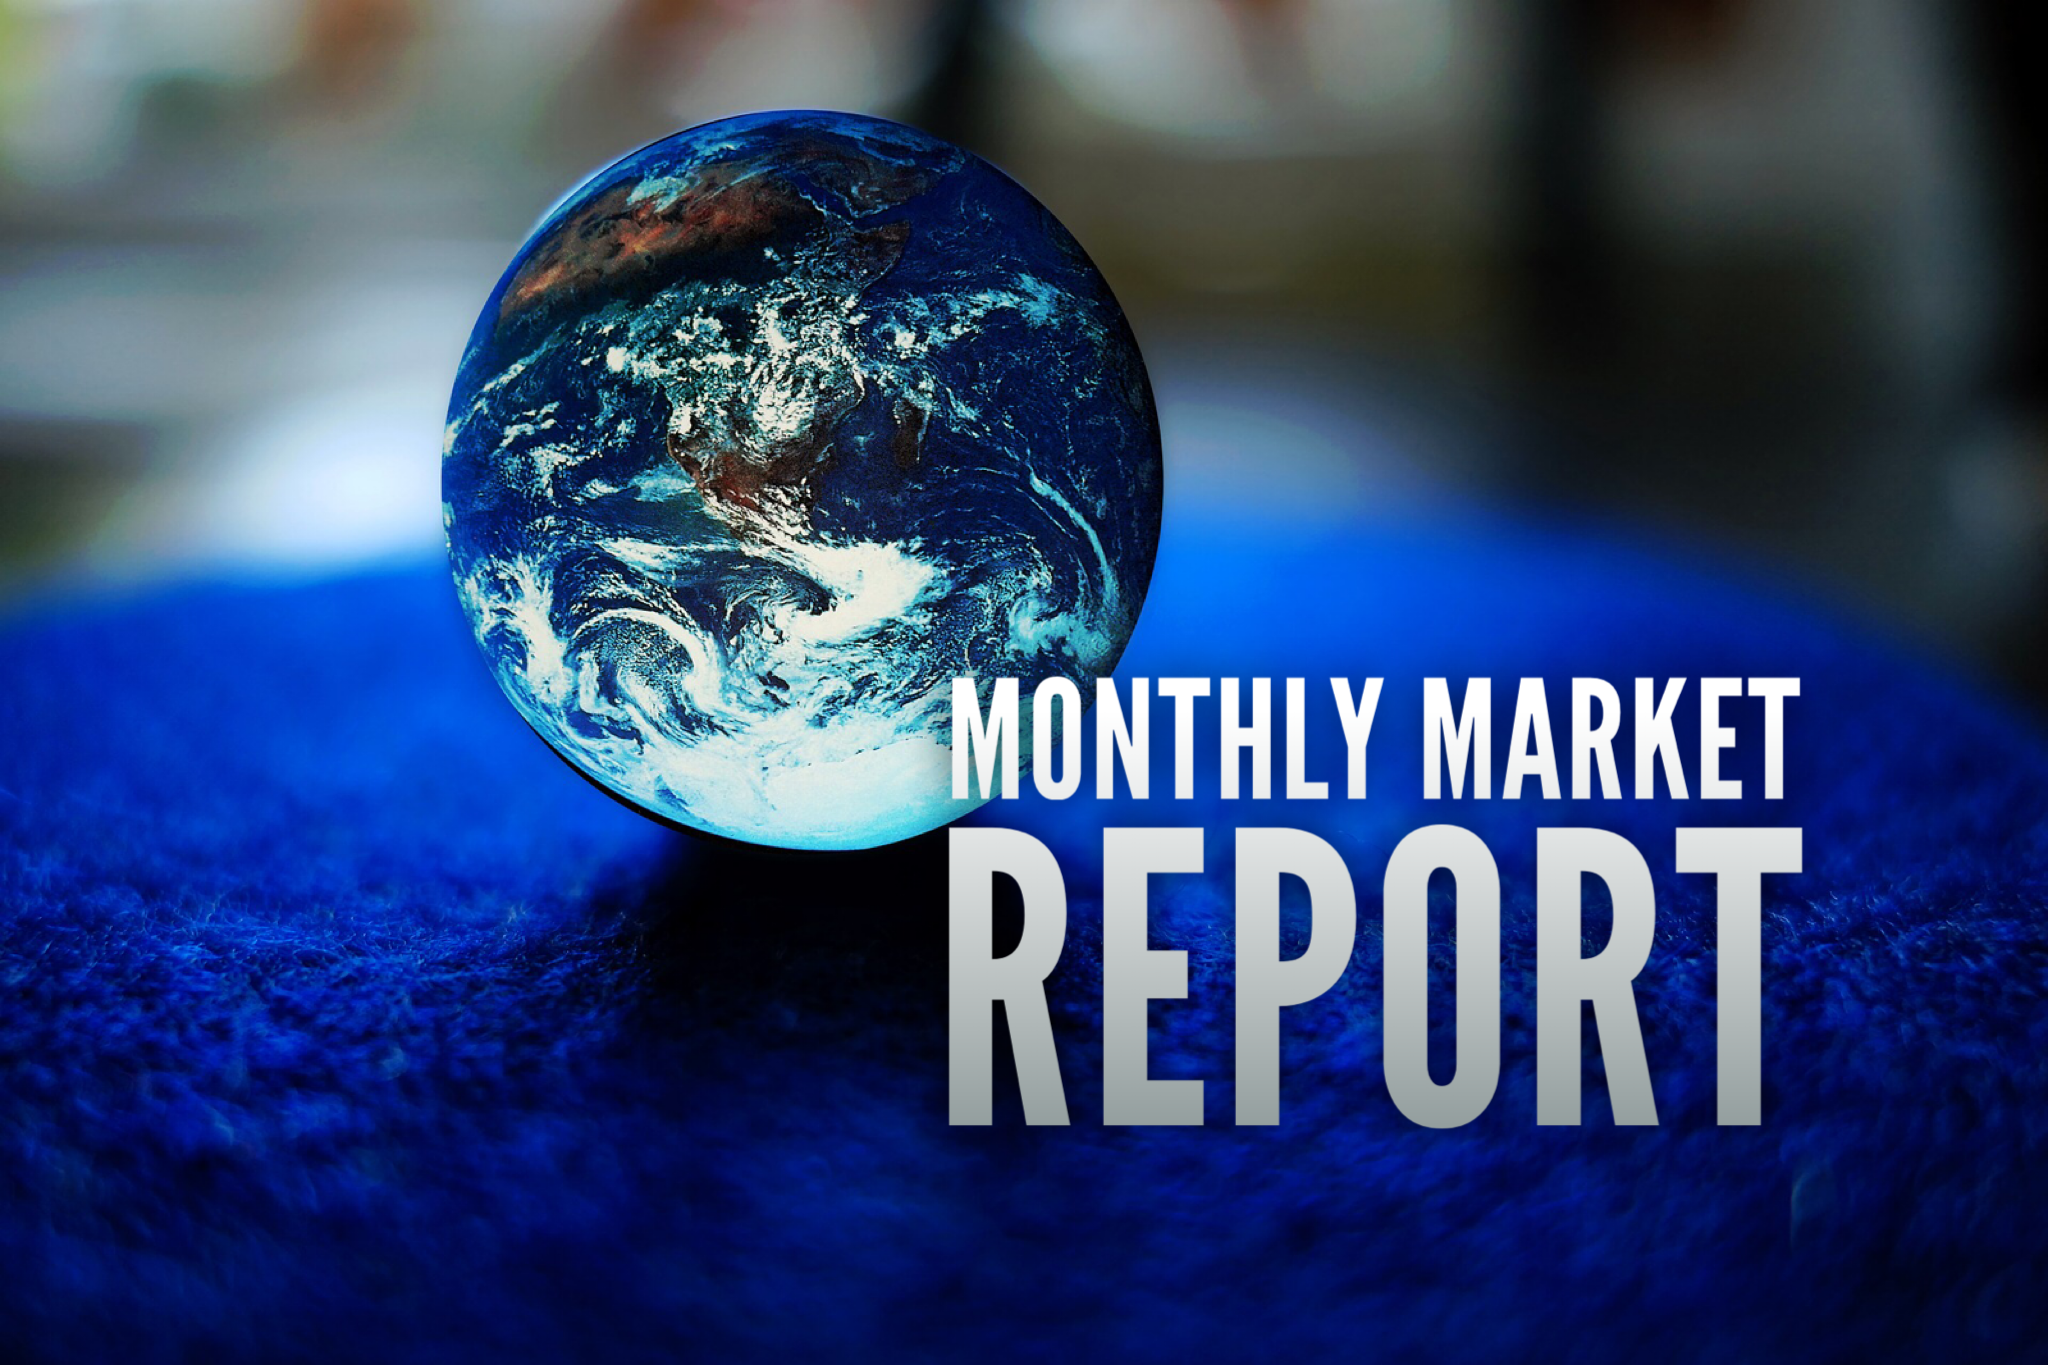 MONTHLY MARKET REPORT: JUNE 2020